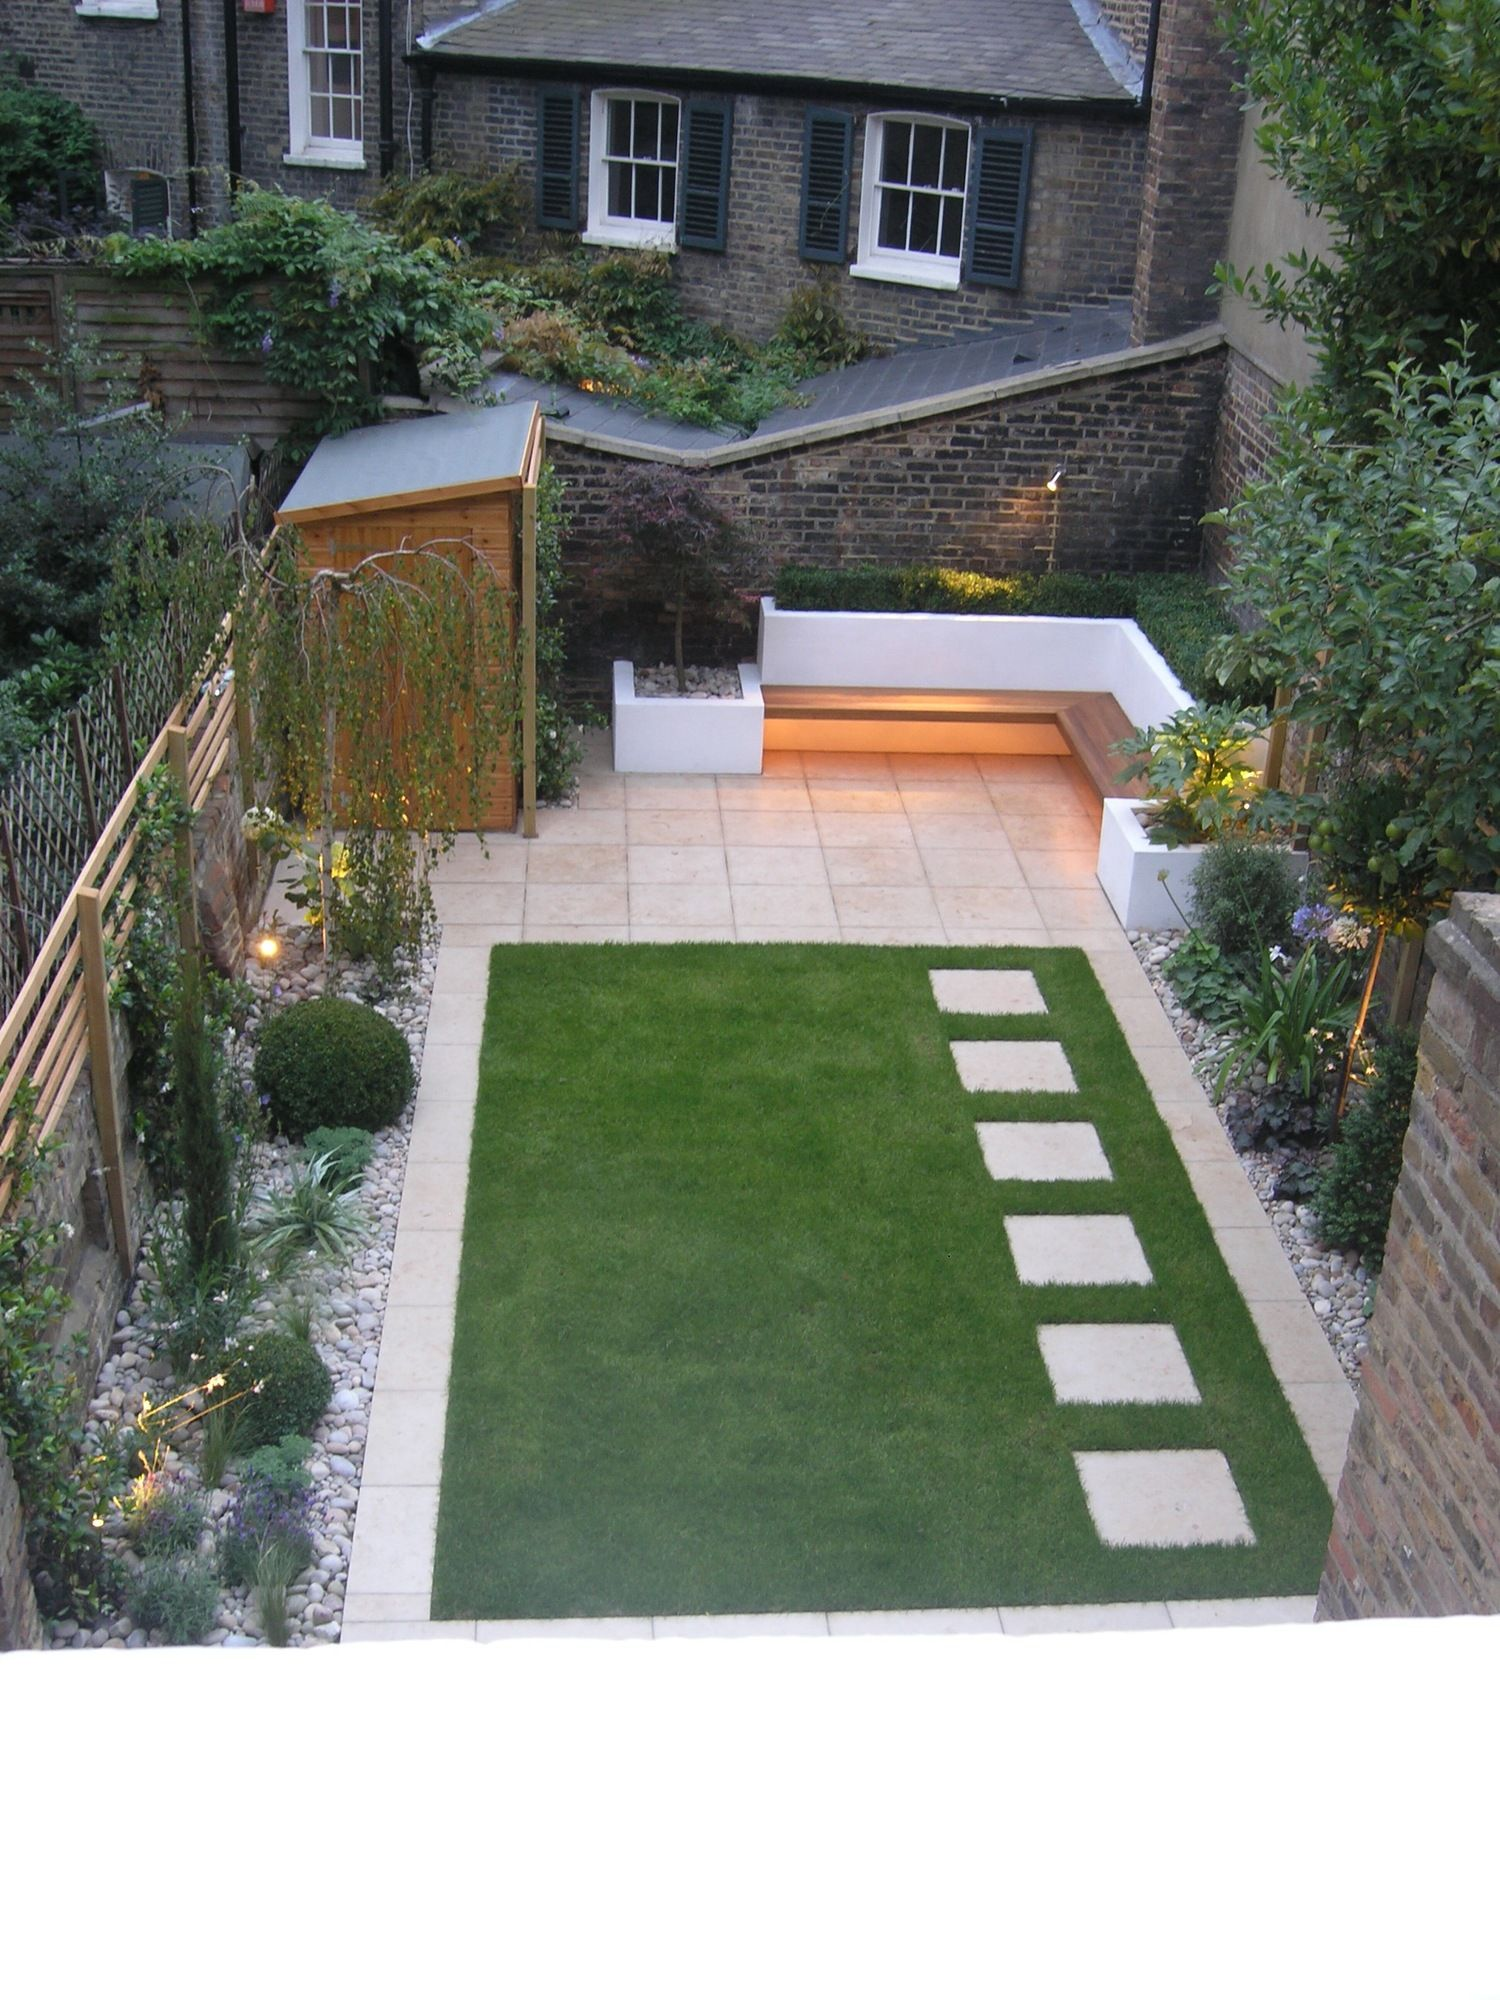 Jardim | Back garden design, Small backyard landscaping ...